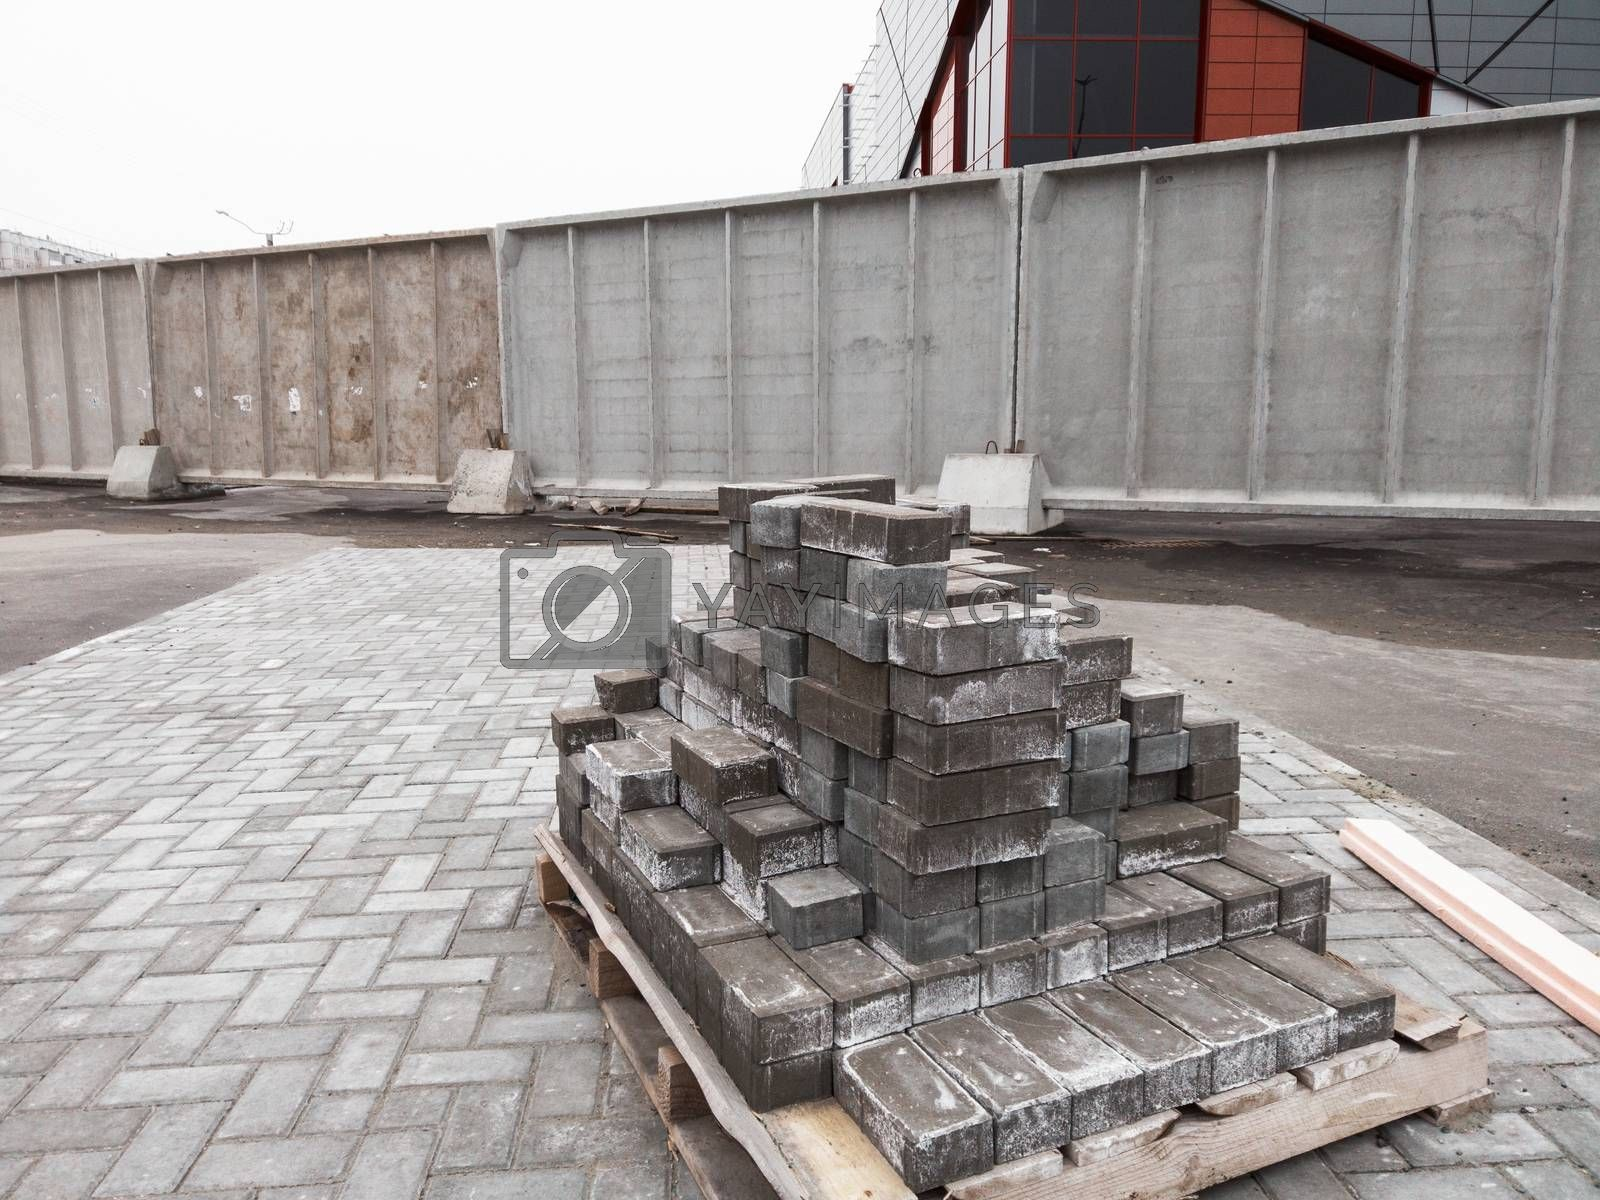 Stack of pavement stones at the road. Concept of repair of the sidewalk.